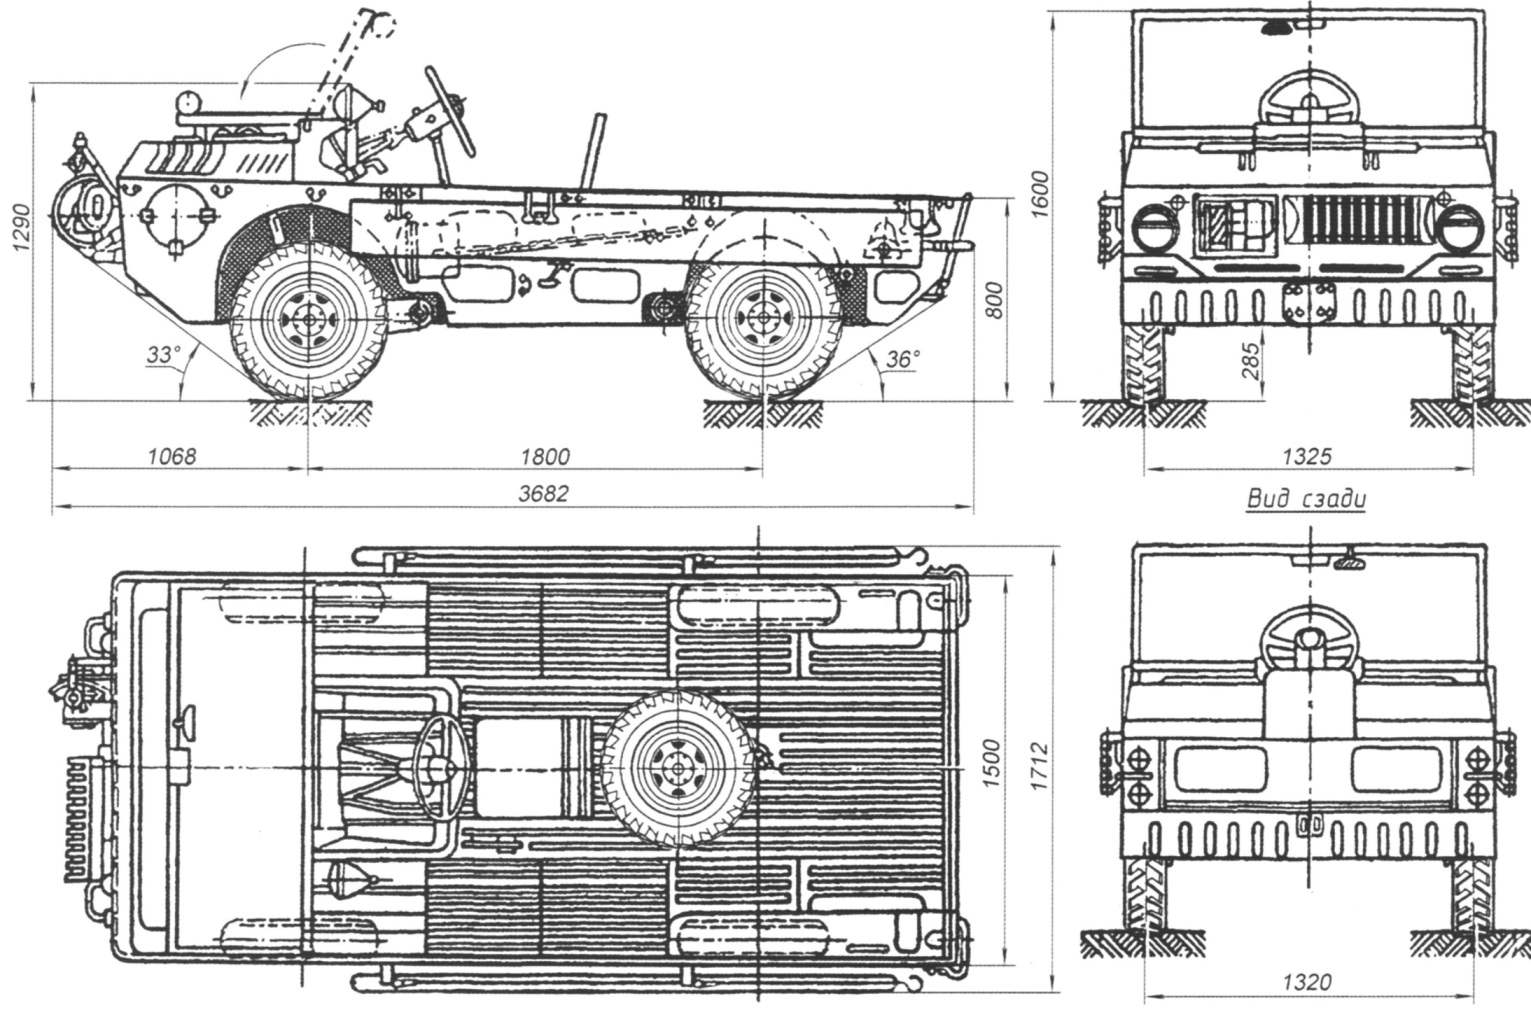 General view and main dimensions of TPK LUAZ-967